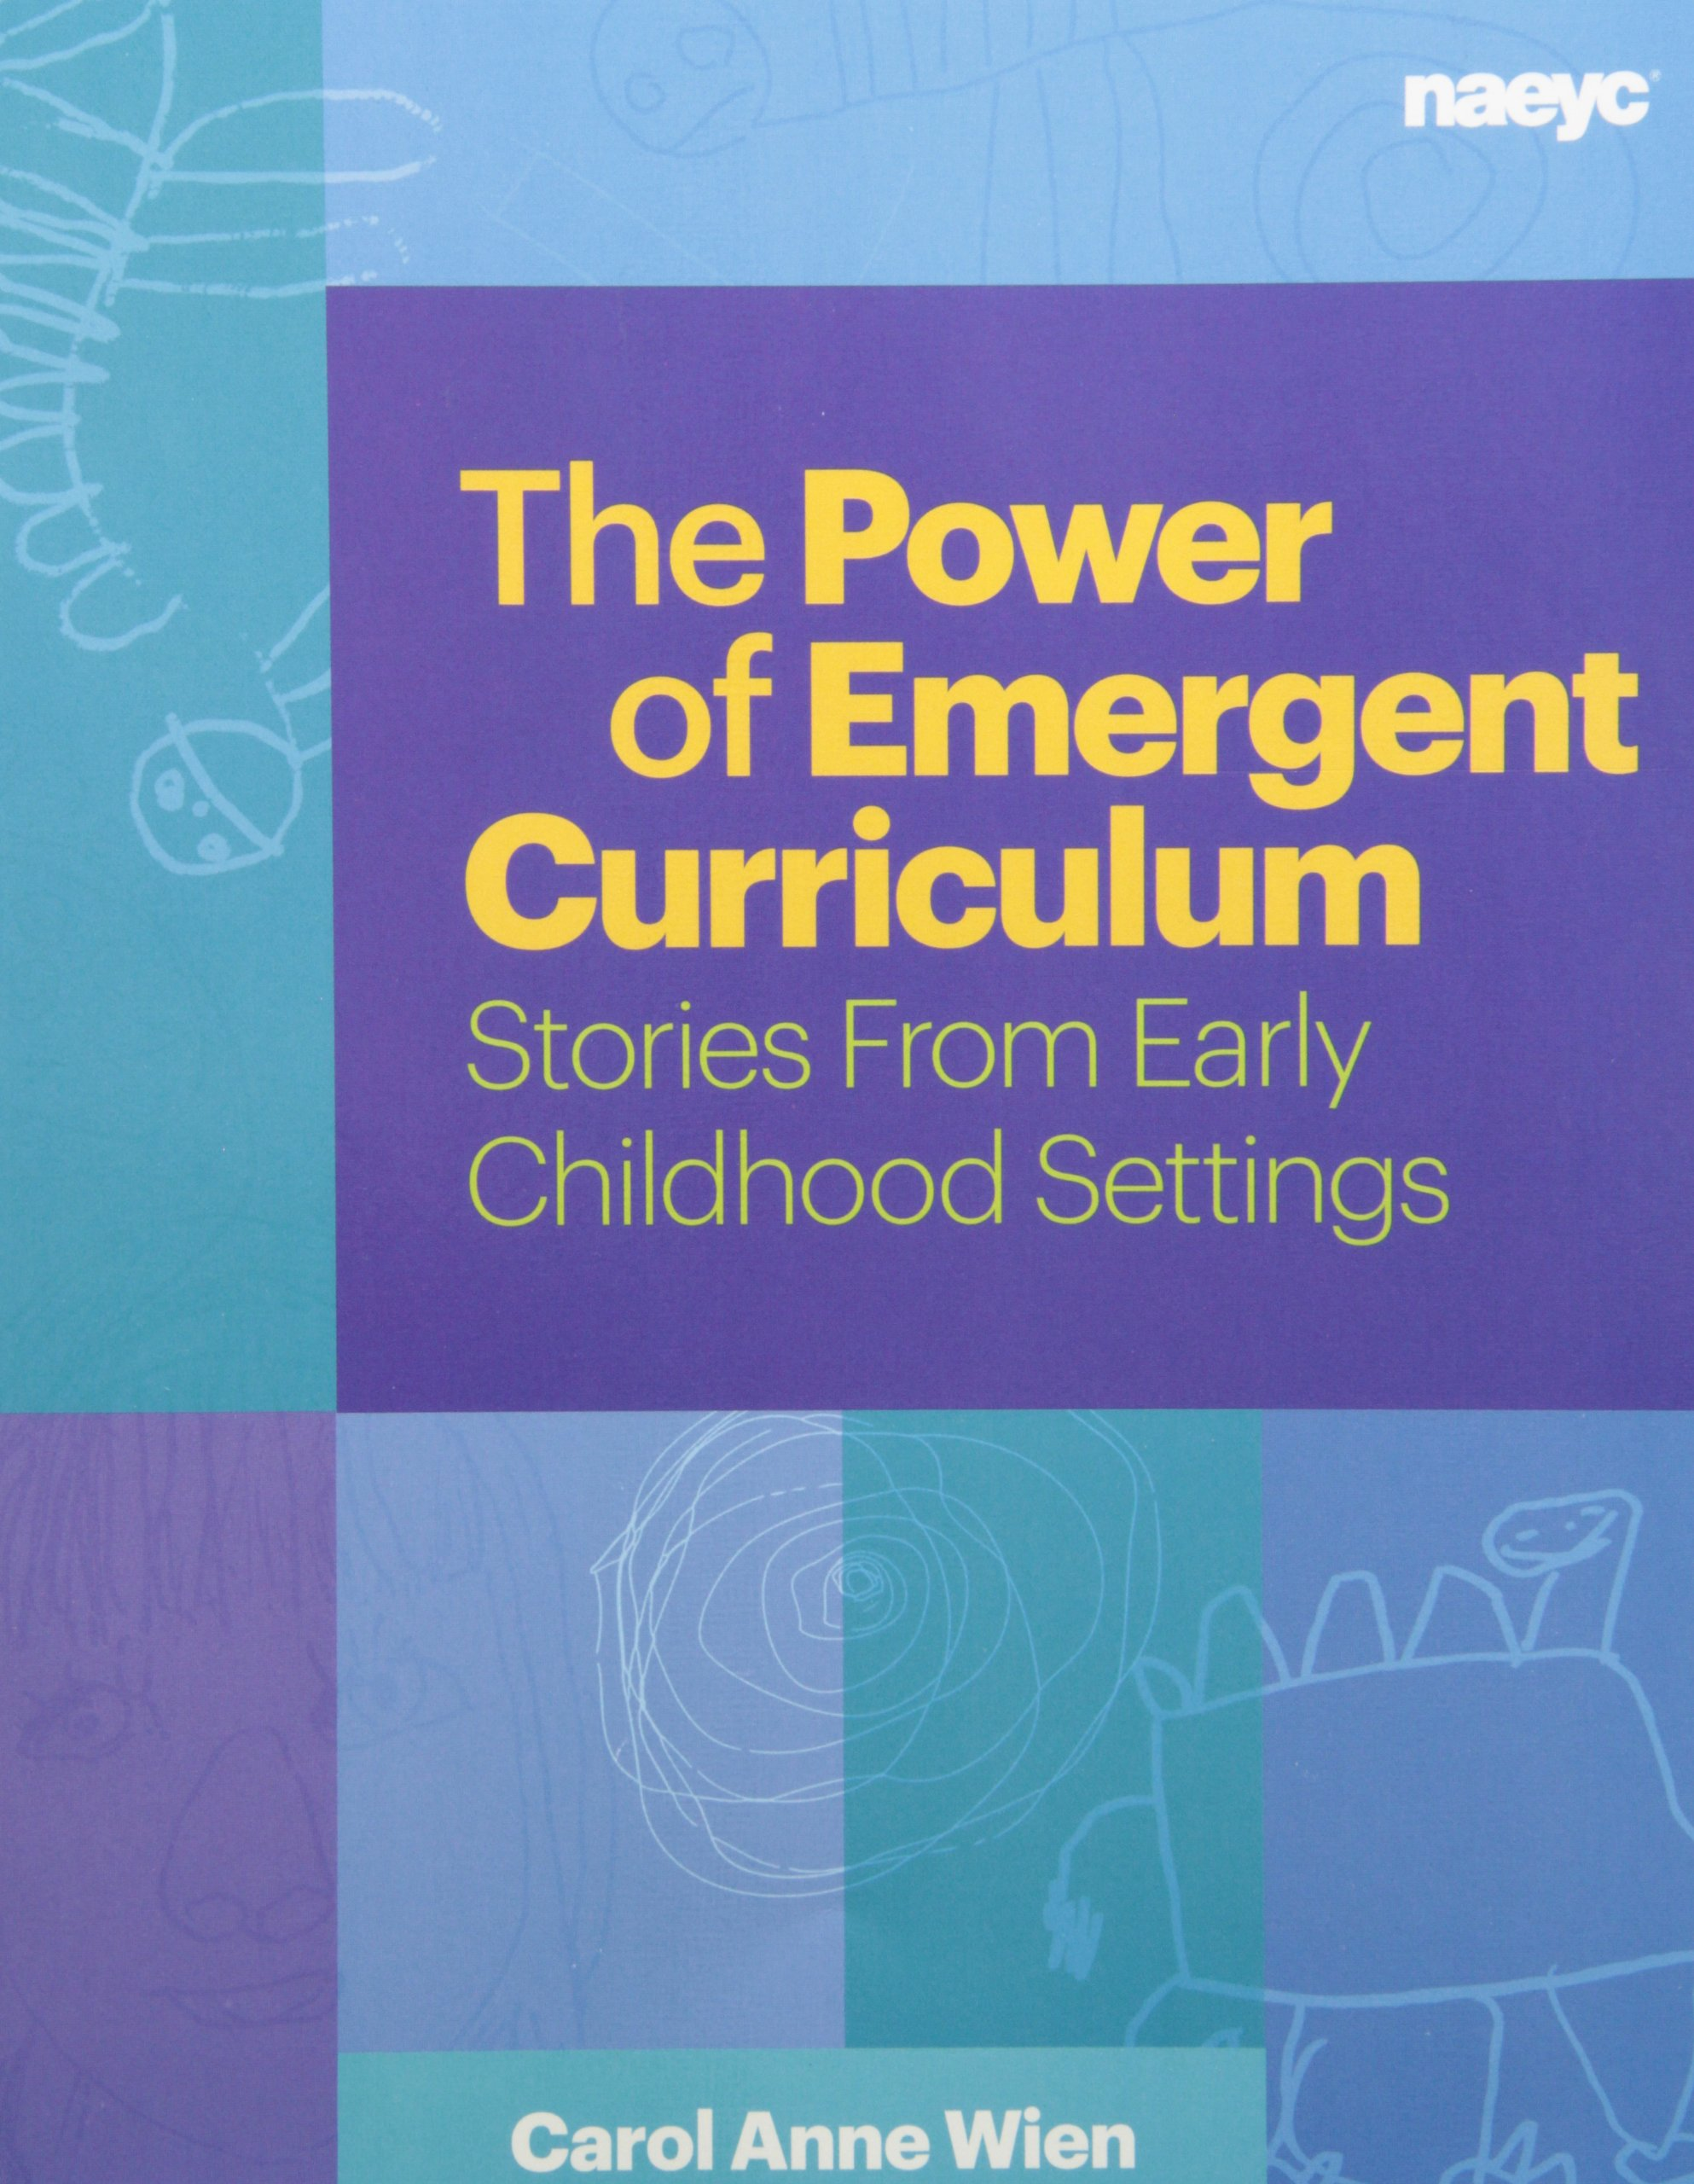 The Power of Emergency Curriculum